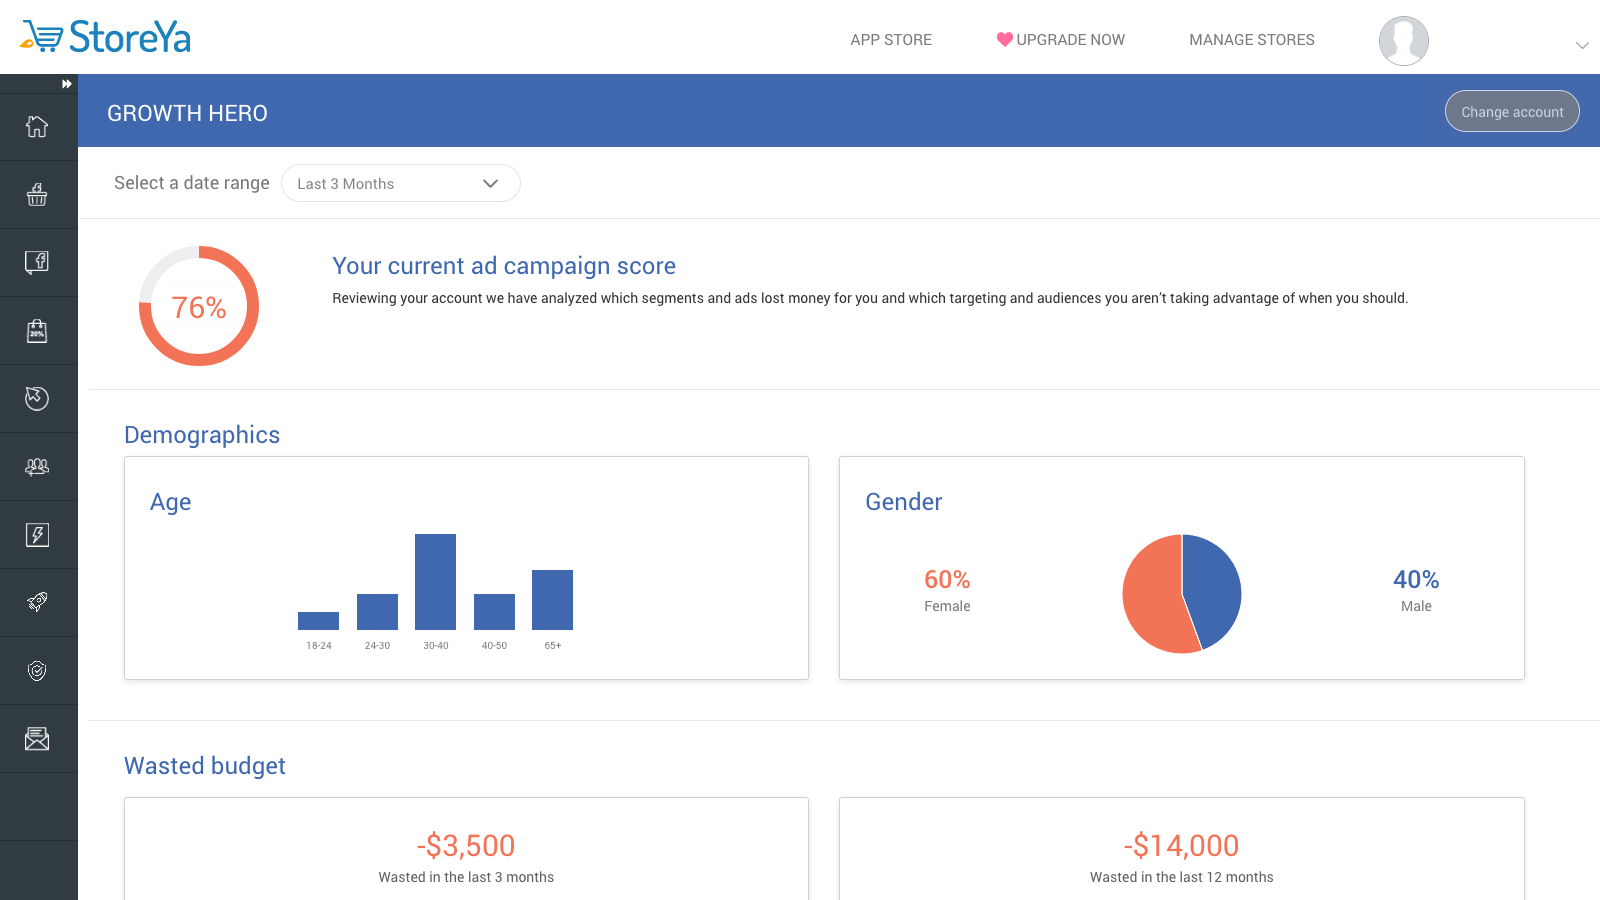 Facebook Ads Audit Growth Hero - Storeya